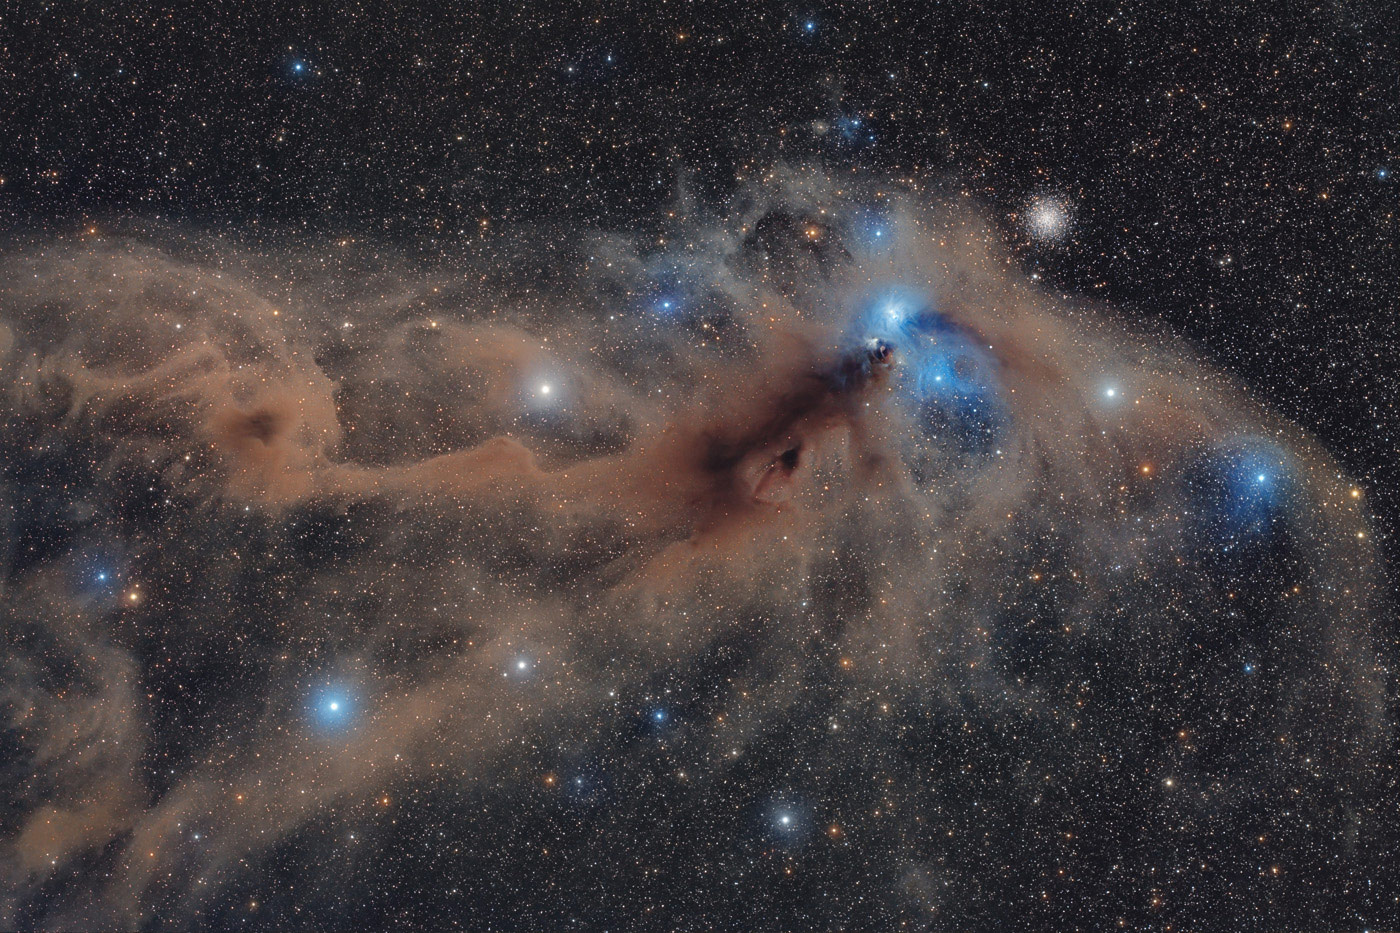 Corona Australis Dust Complex, © Mario Cogo, Stars and Nebulae Winner, Astronomy Photographer of the Year